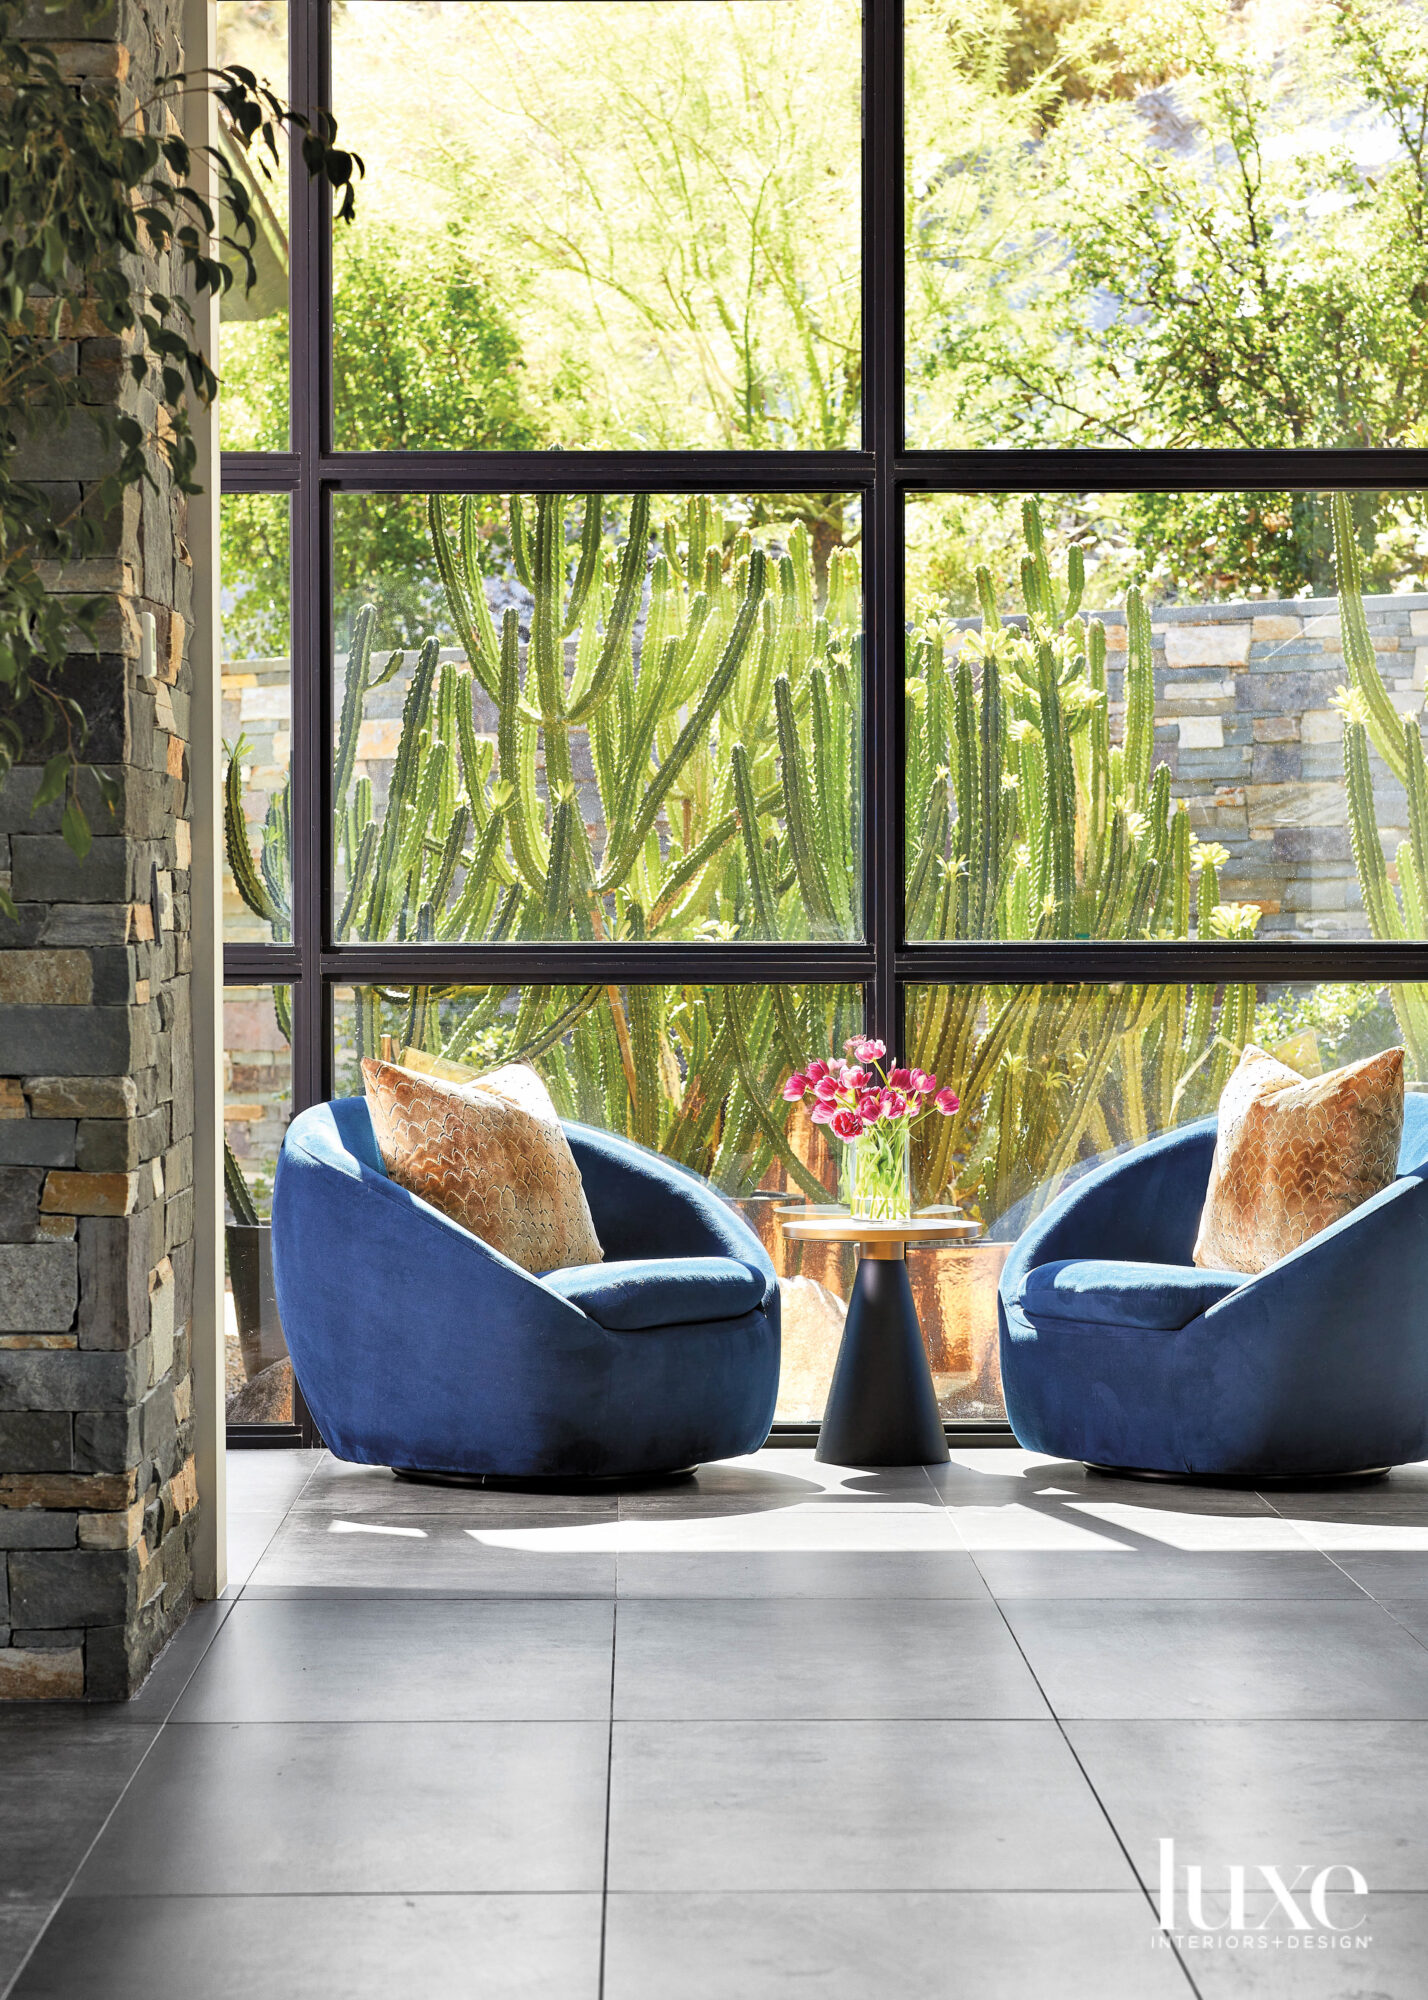 A seating area with two...